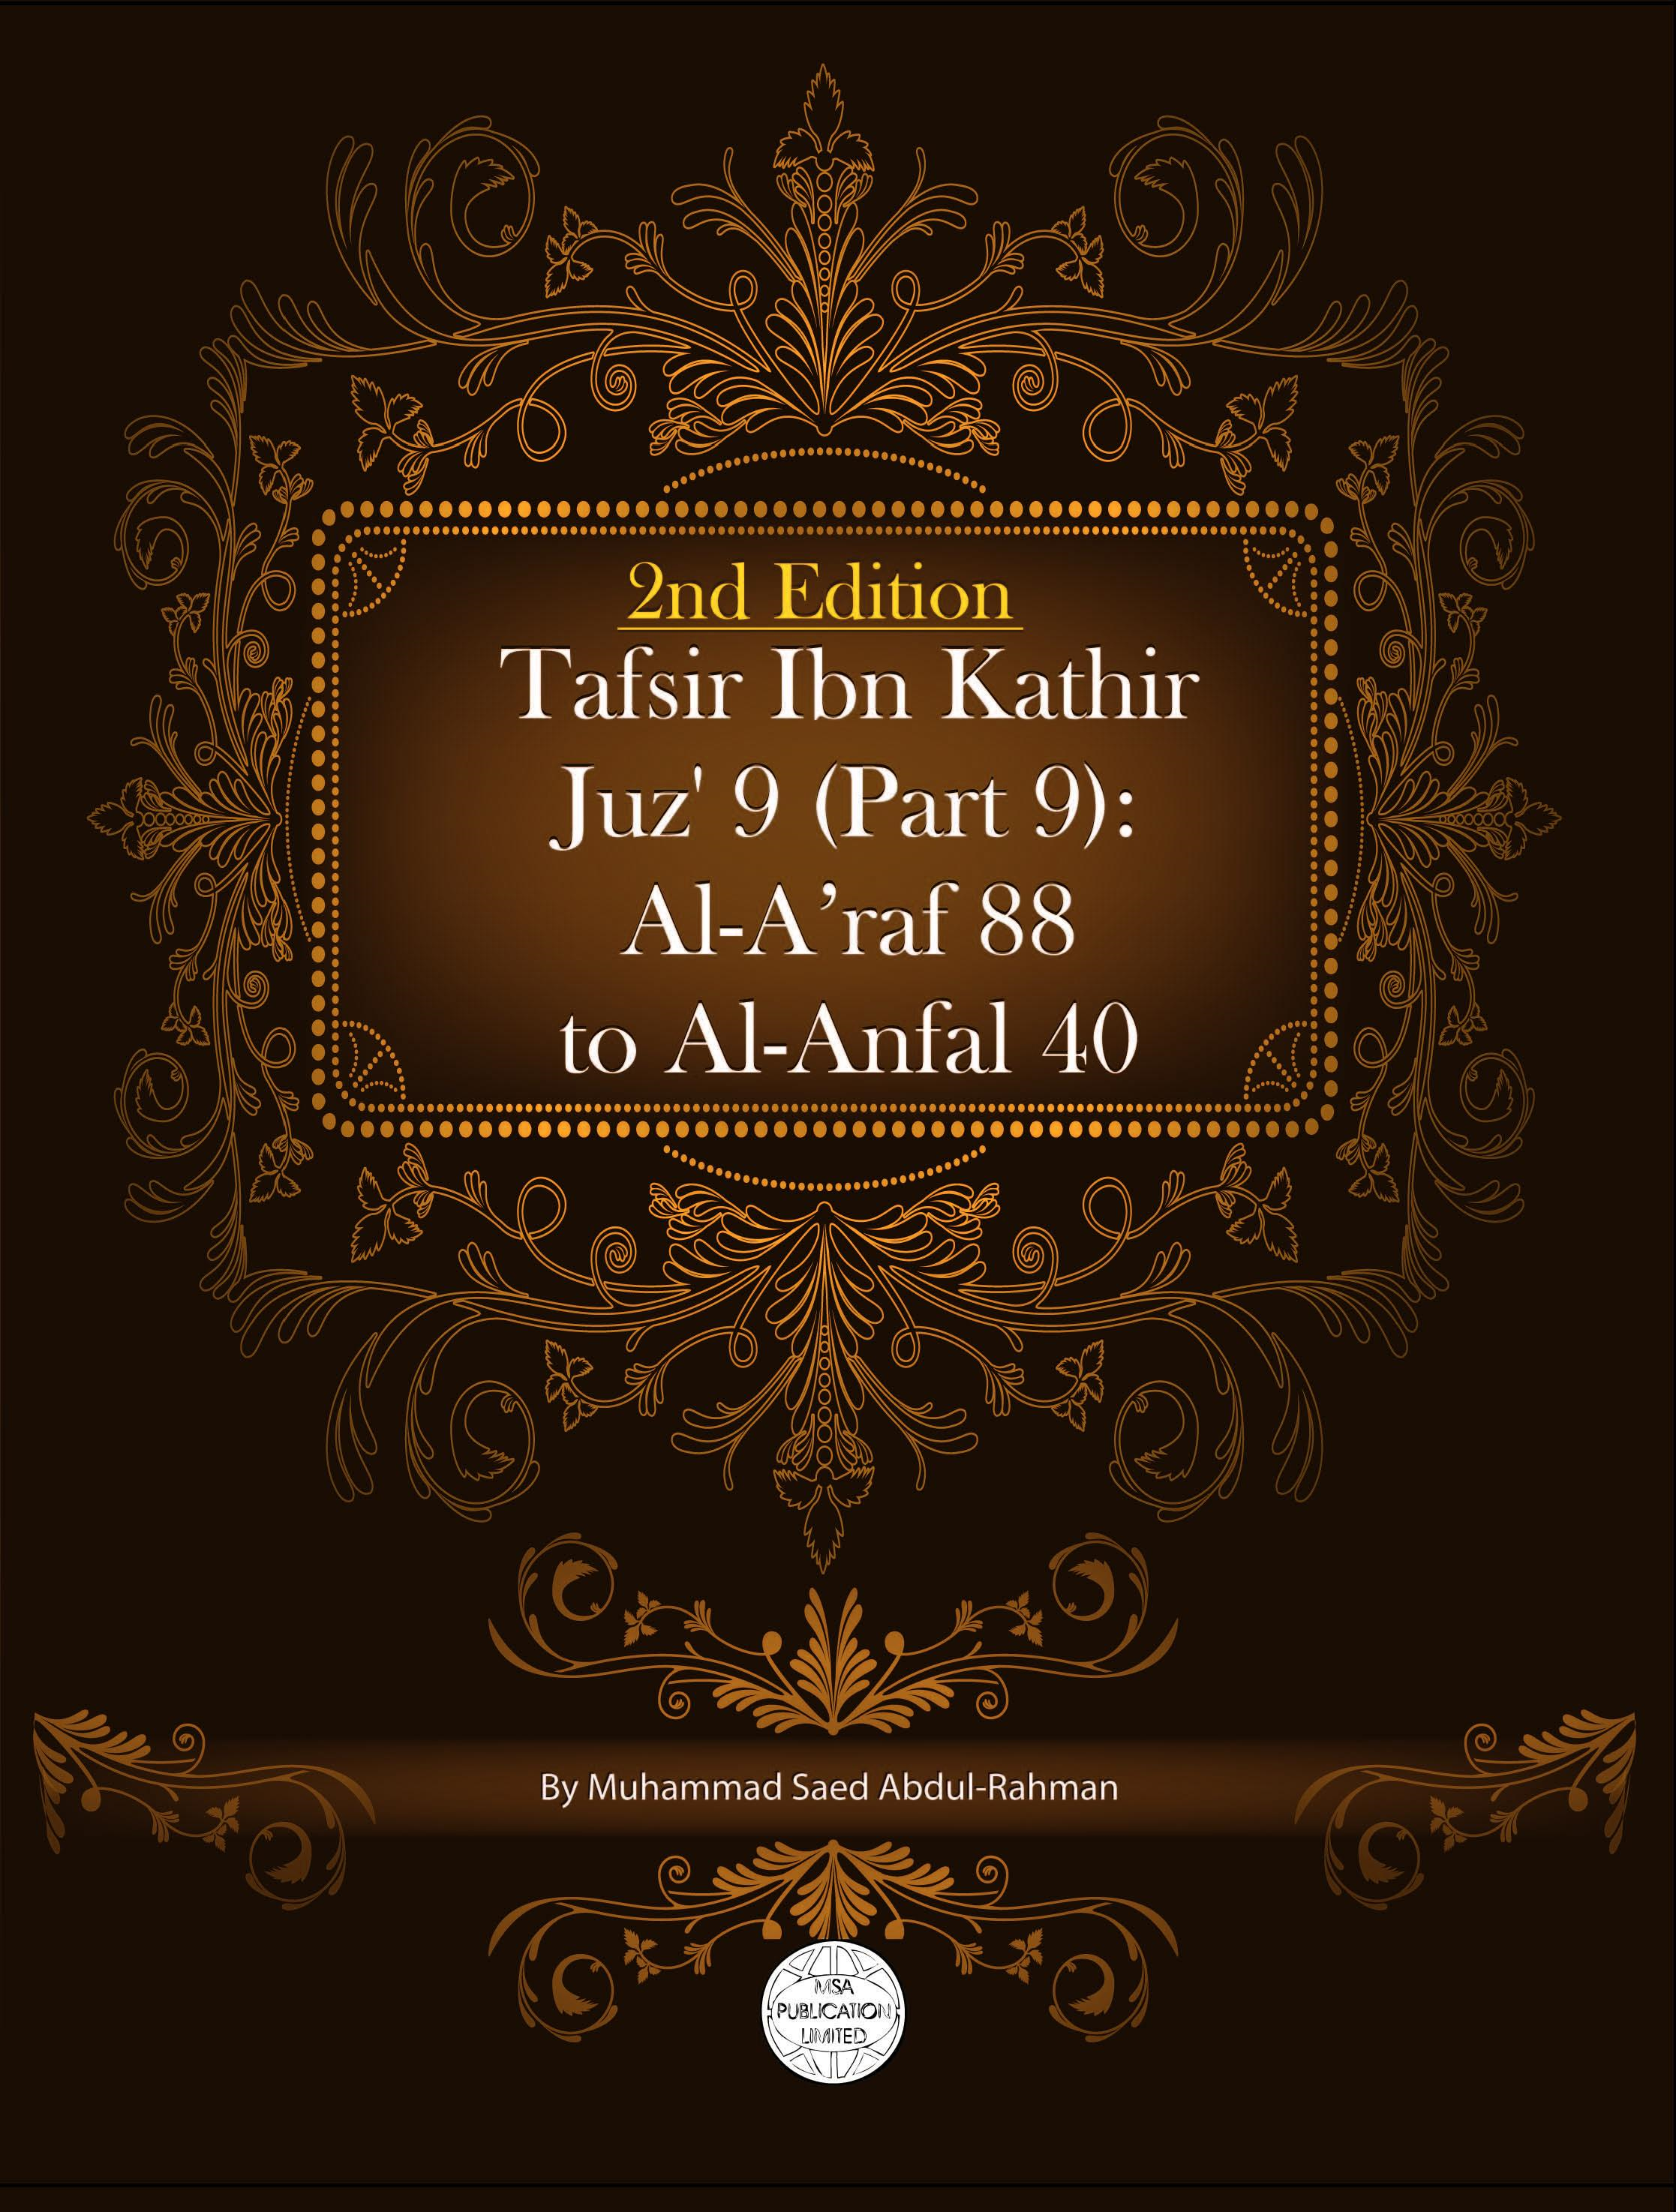 Tafsir Ibn Kathir Juz' 9 (Part 9): Al-A'raf 88 To Al-Anfal 40 2nd Edition